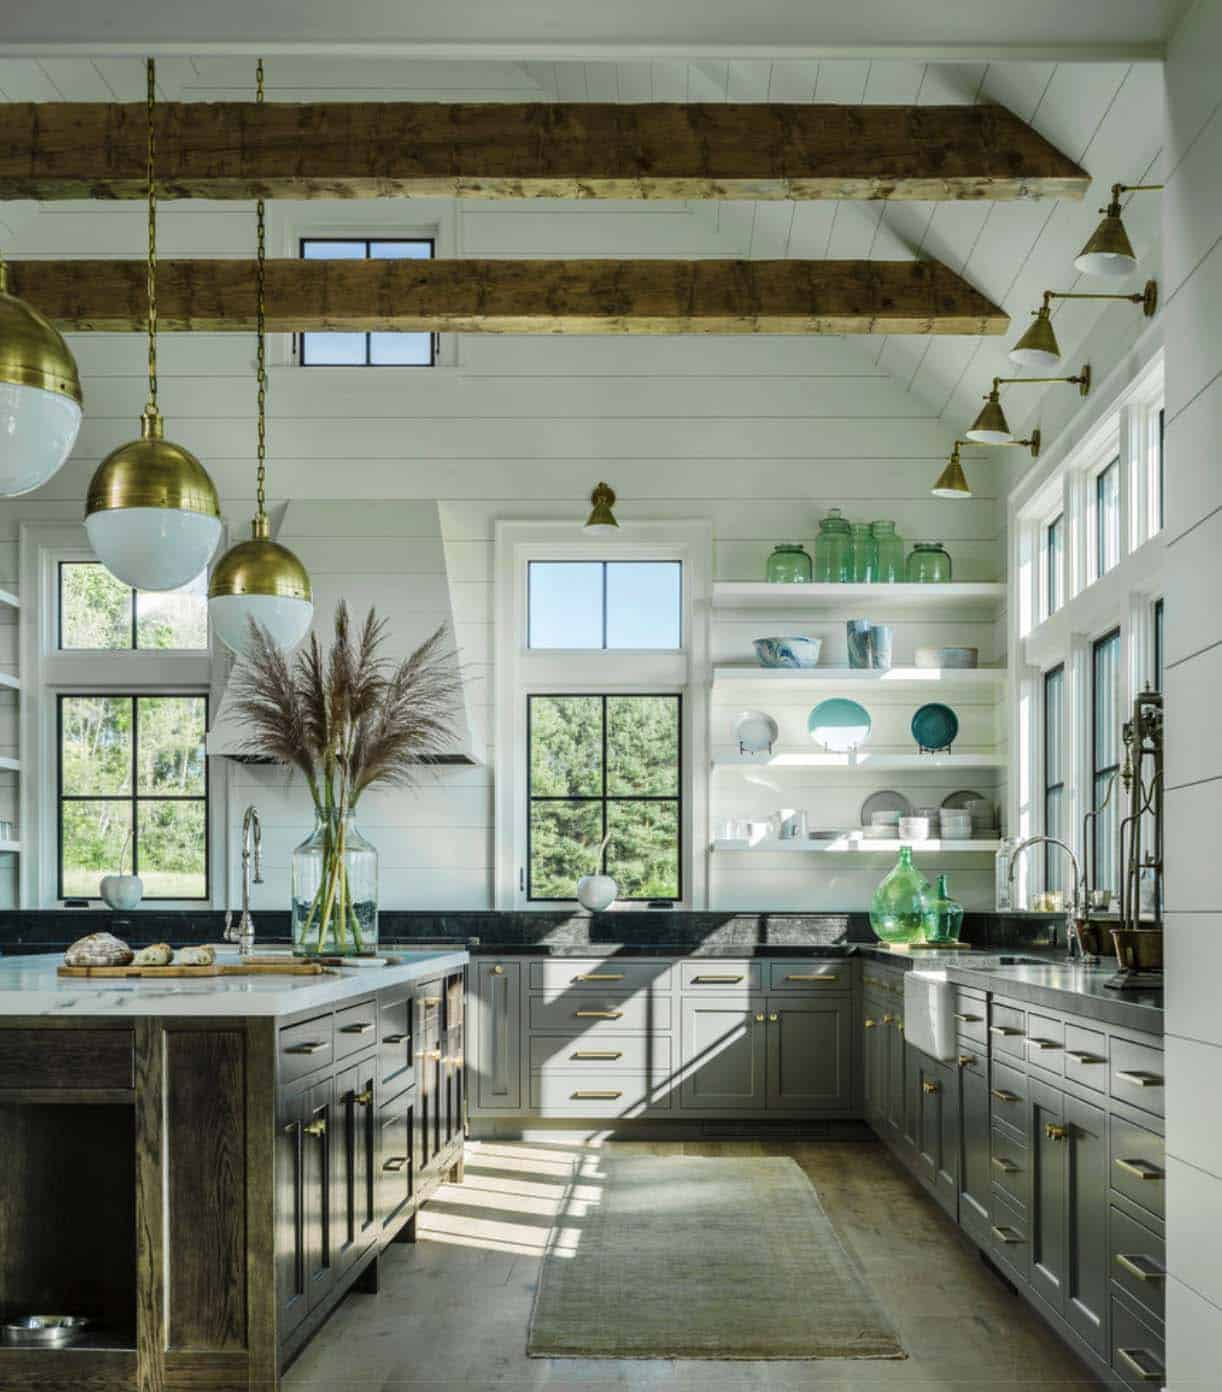 Amazing Kitchens Part - 43: 1. Traditional Farmhouse Style Dwelling In Vermont With A Modern Twist